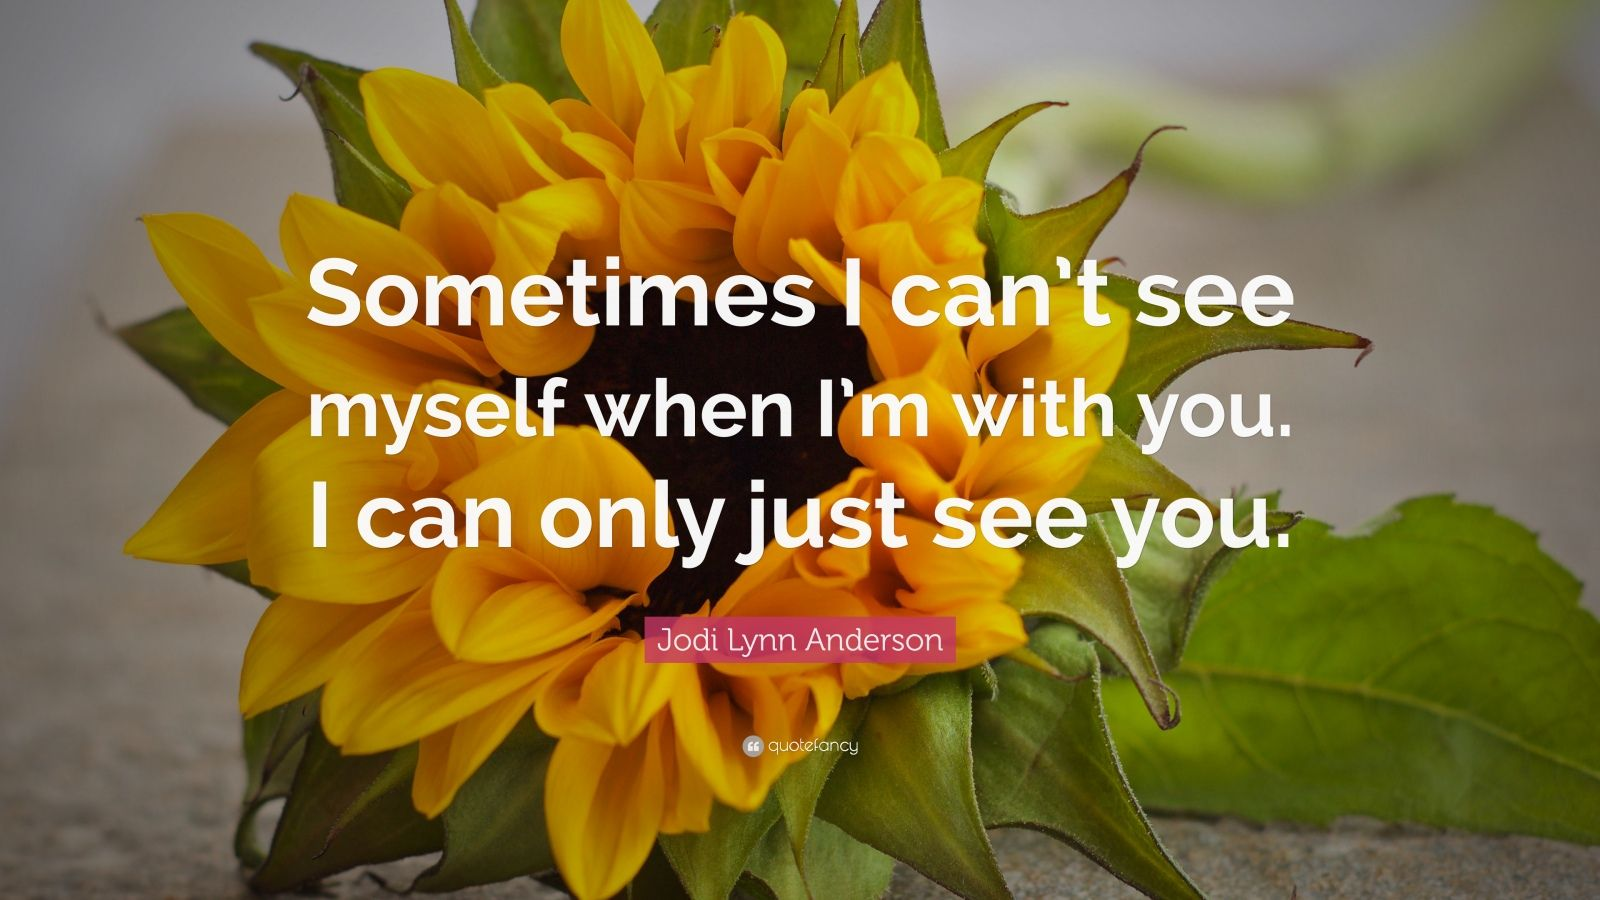 Sometimes I can't see myself when I'm with you. I can only just see you.